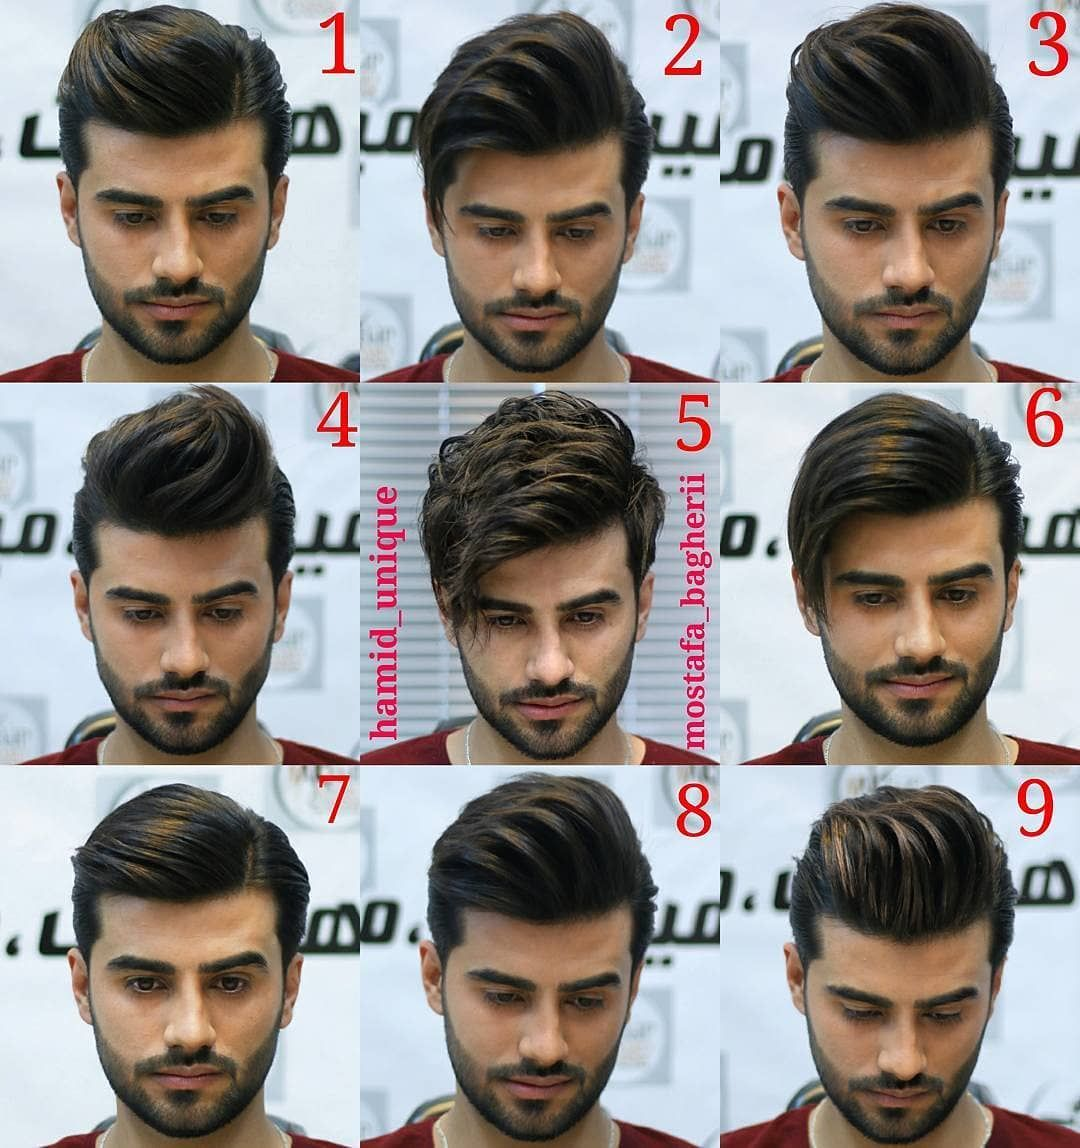 New] The 10 Best Hairstyles for Men (in the World) | Hairstyles for Men  With Curly Hair Short Medium Backside W… | Curly hair men, Beard hairstyle, Mens  hairstyles